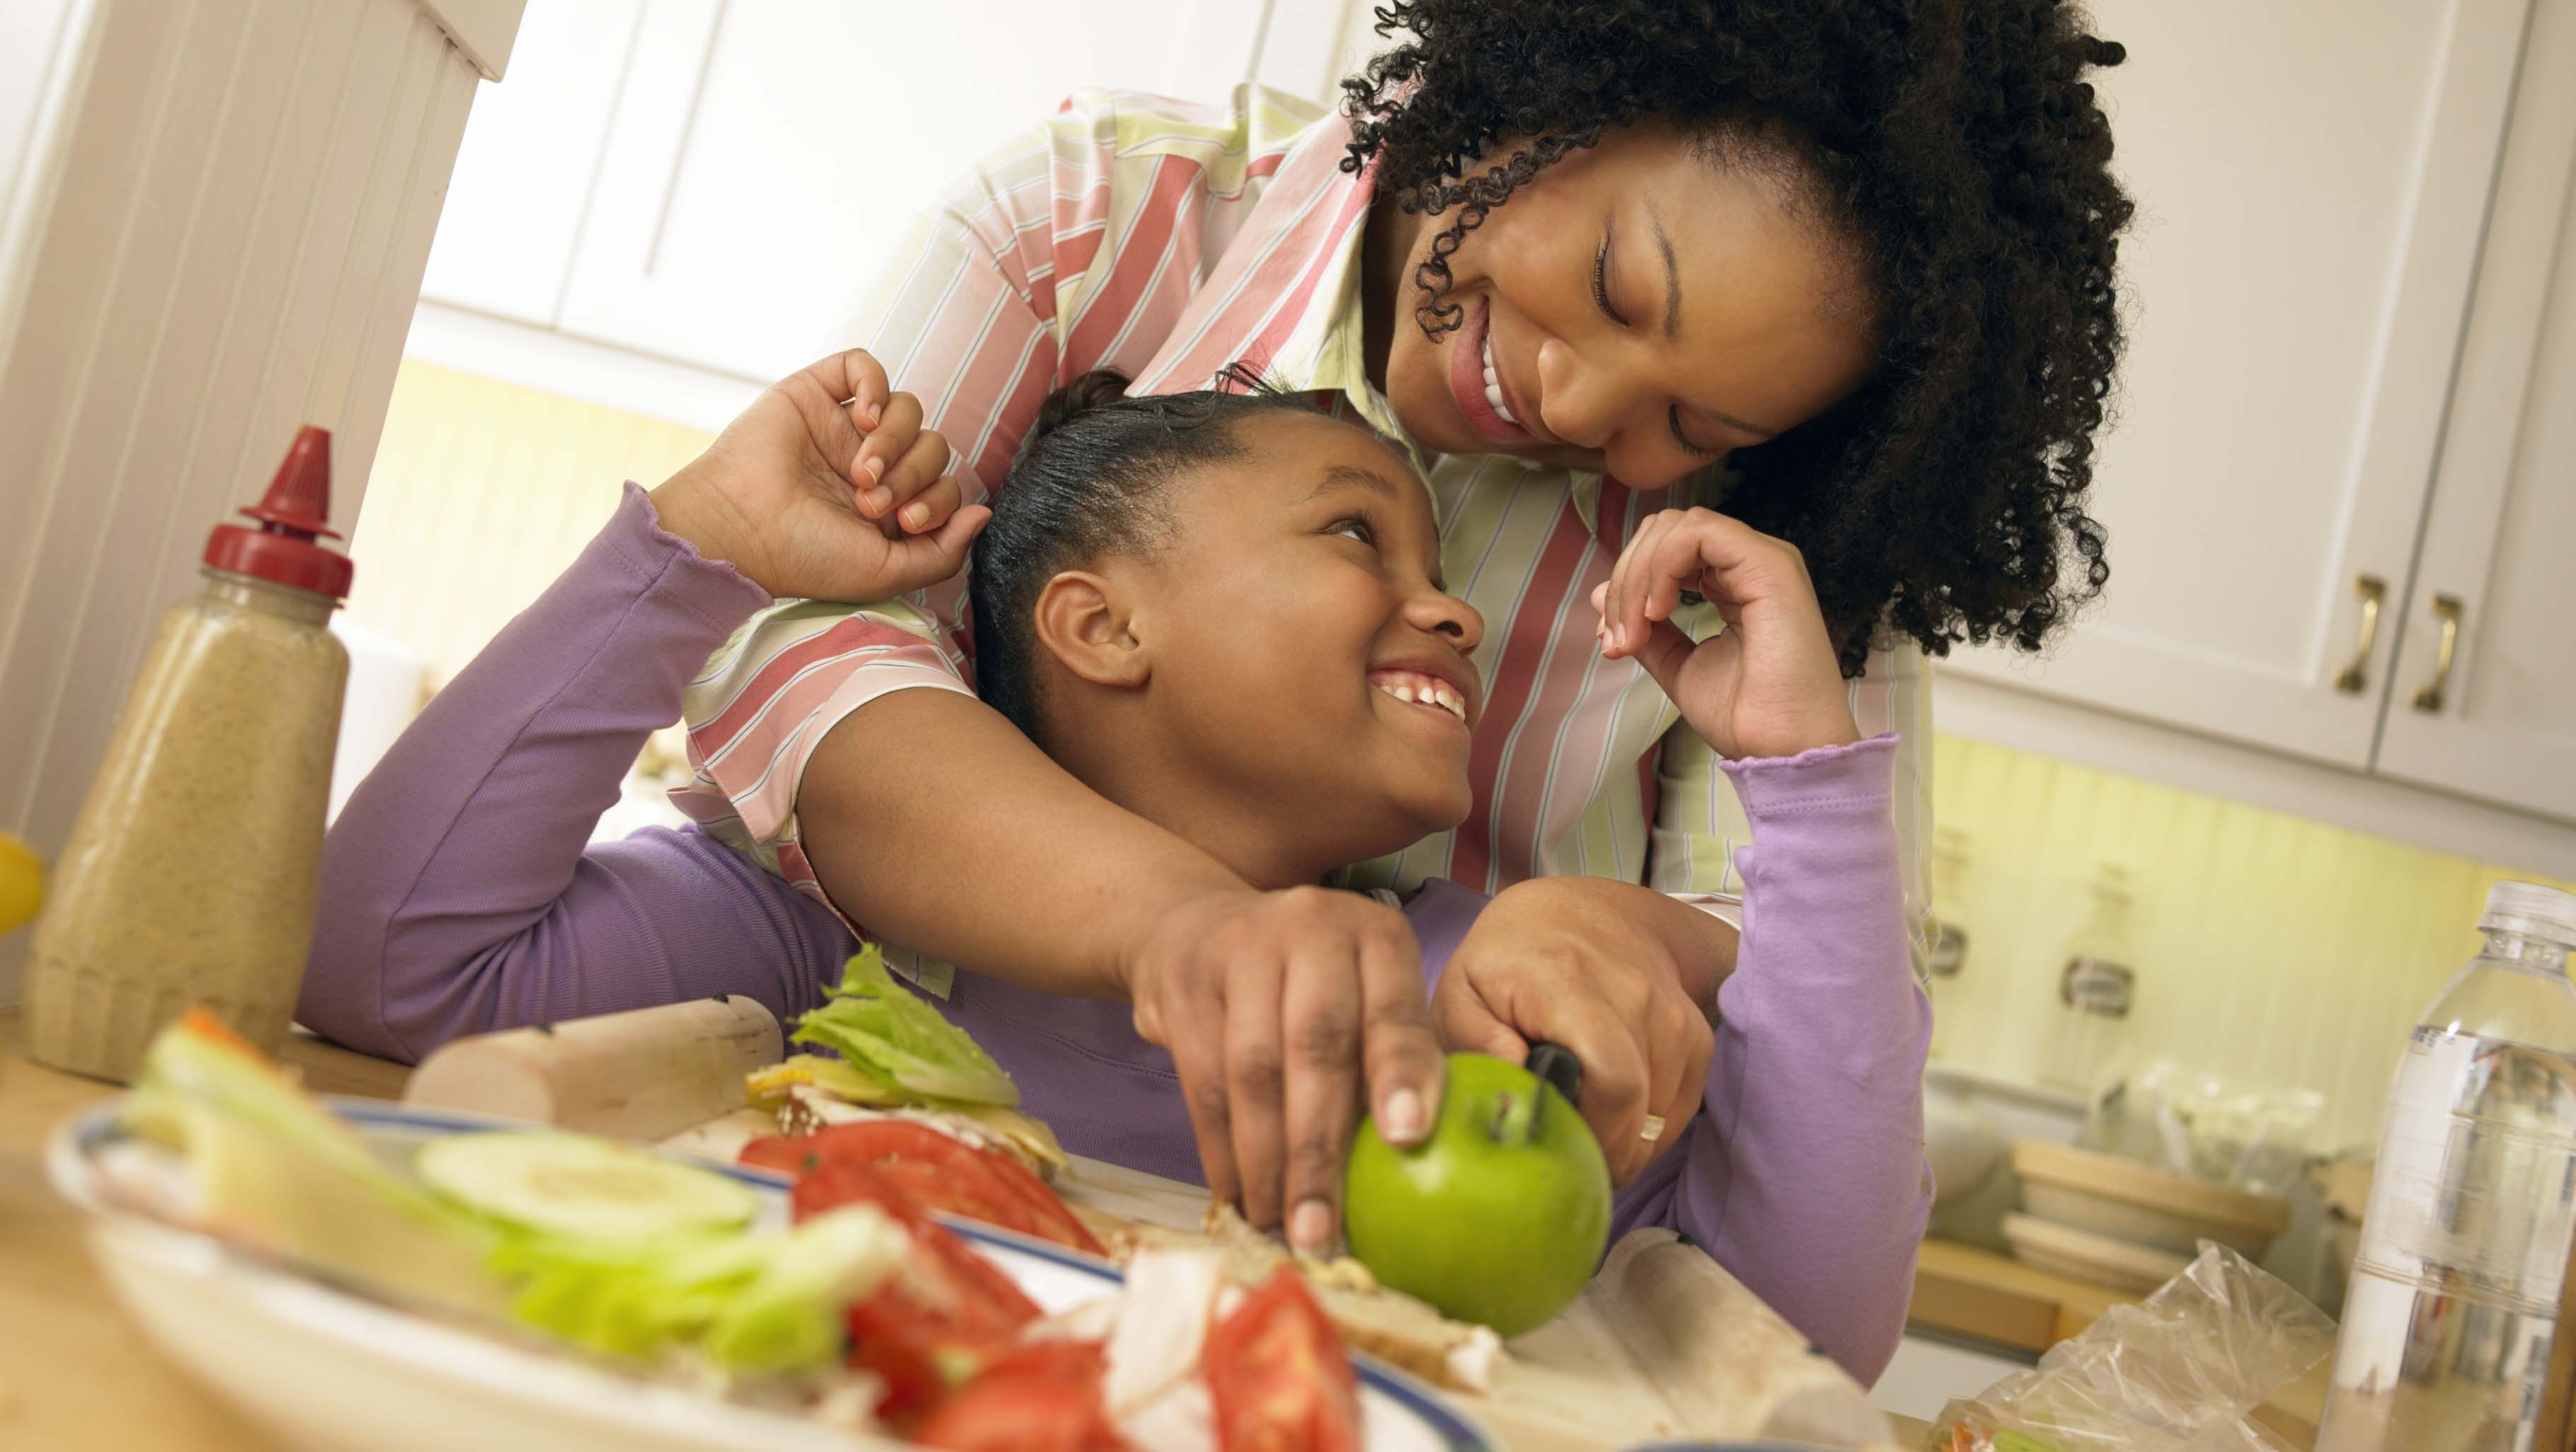 Mother and daughter prepare nutritional snack